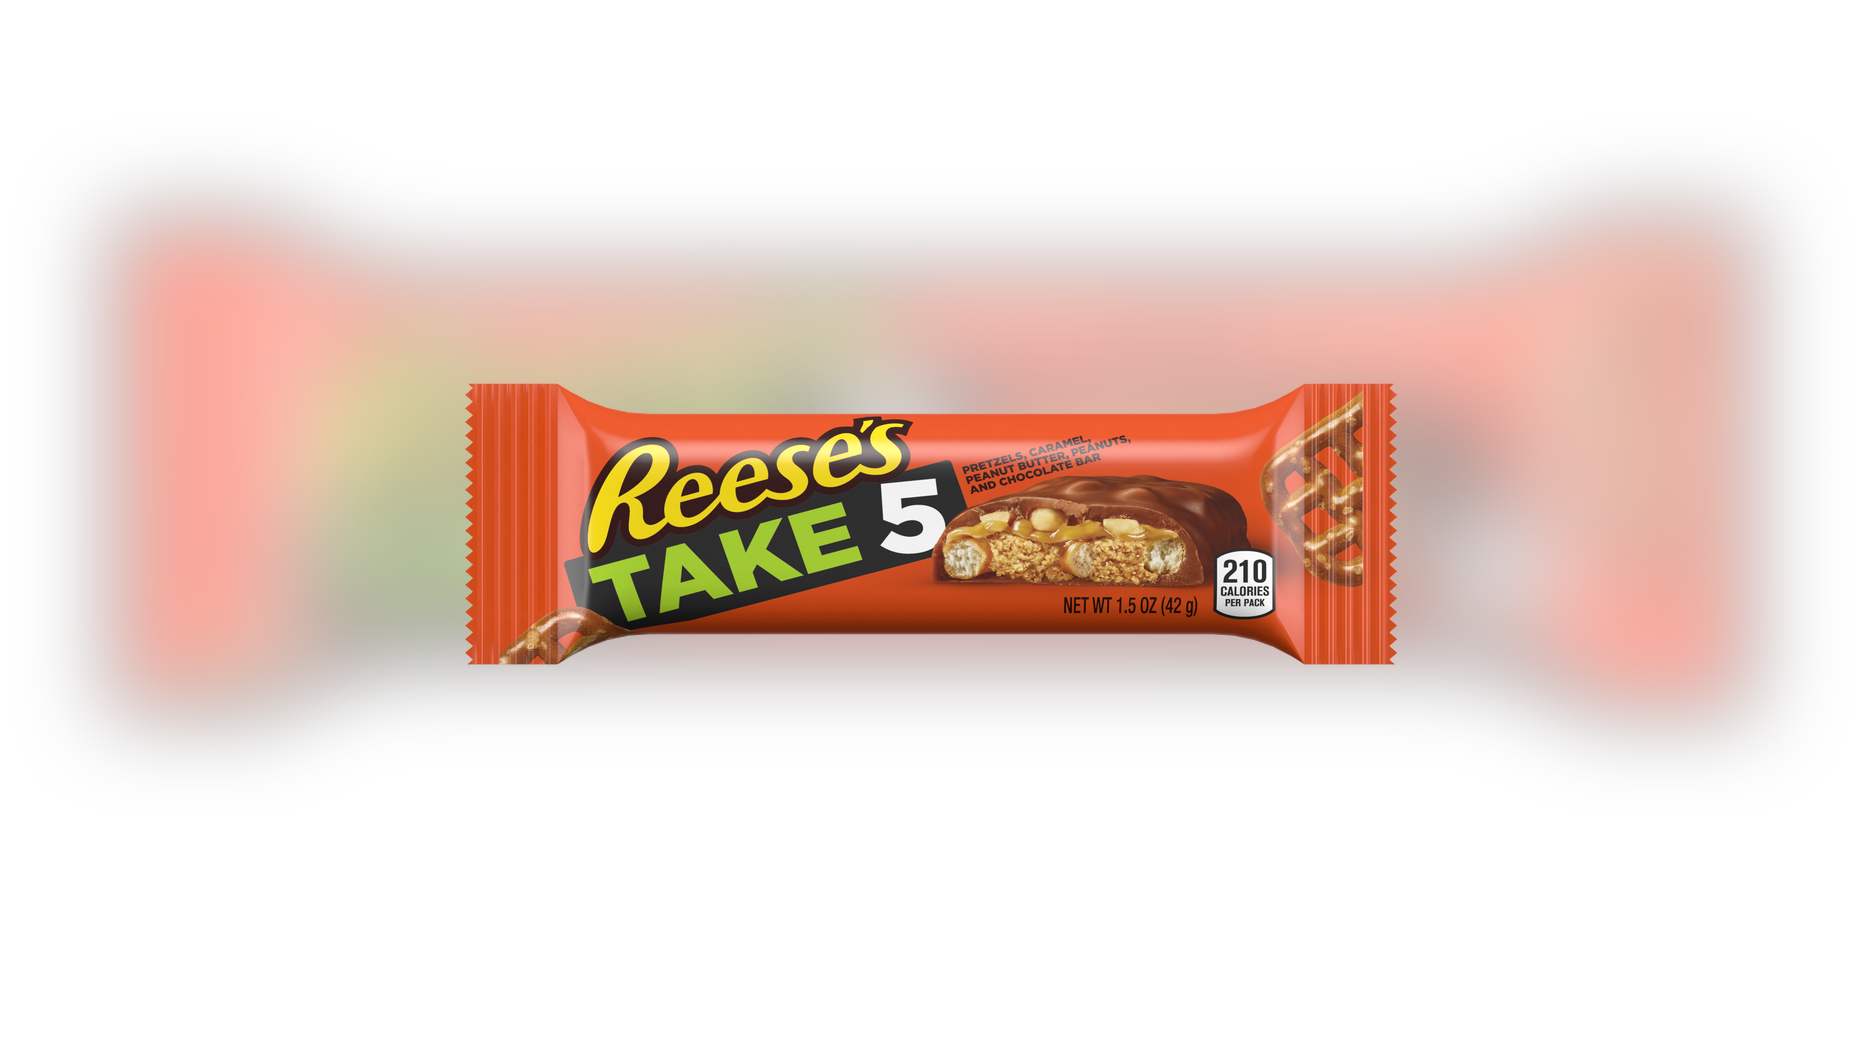 Take5 candy bar becomes Reese's Take5 as treat changes ...